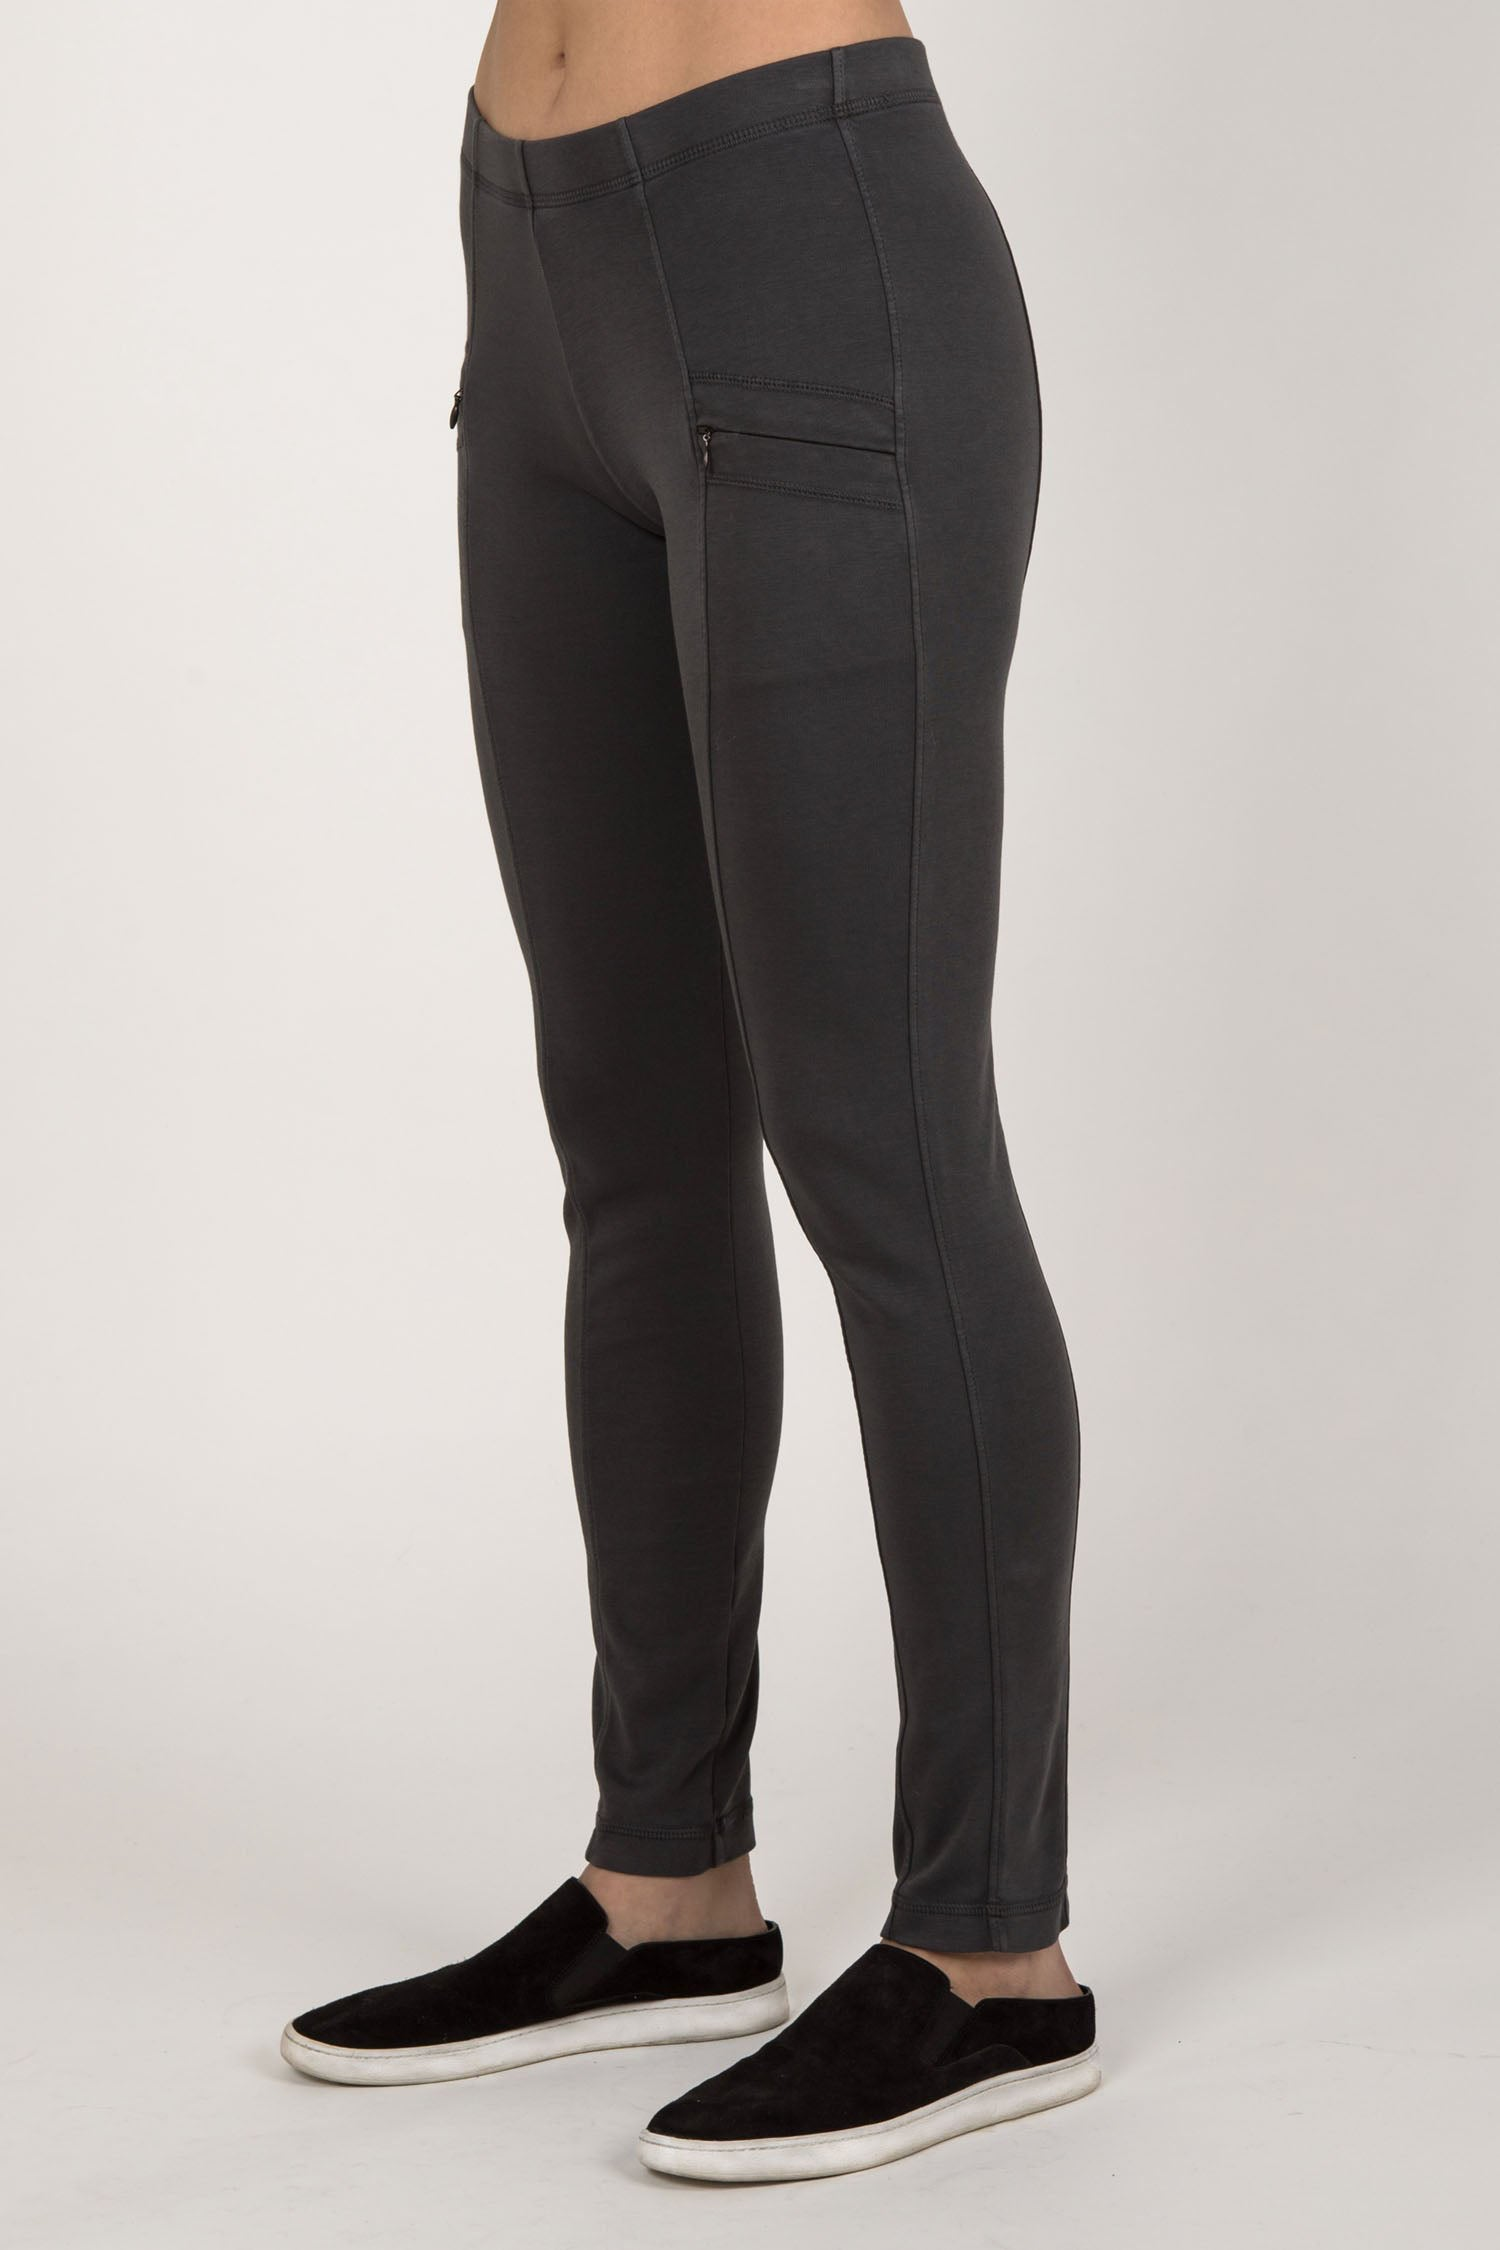 Essential Riding Pant - Indigenous